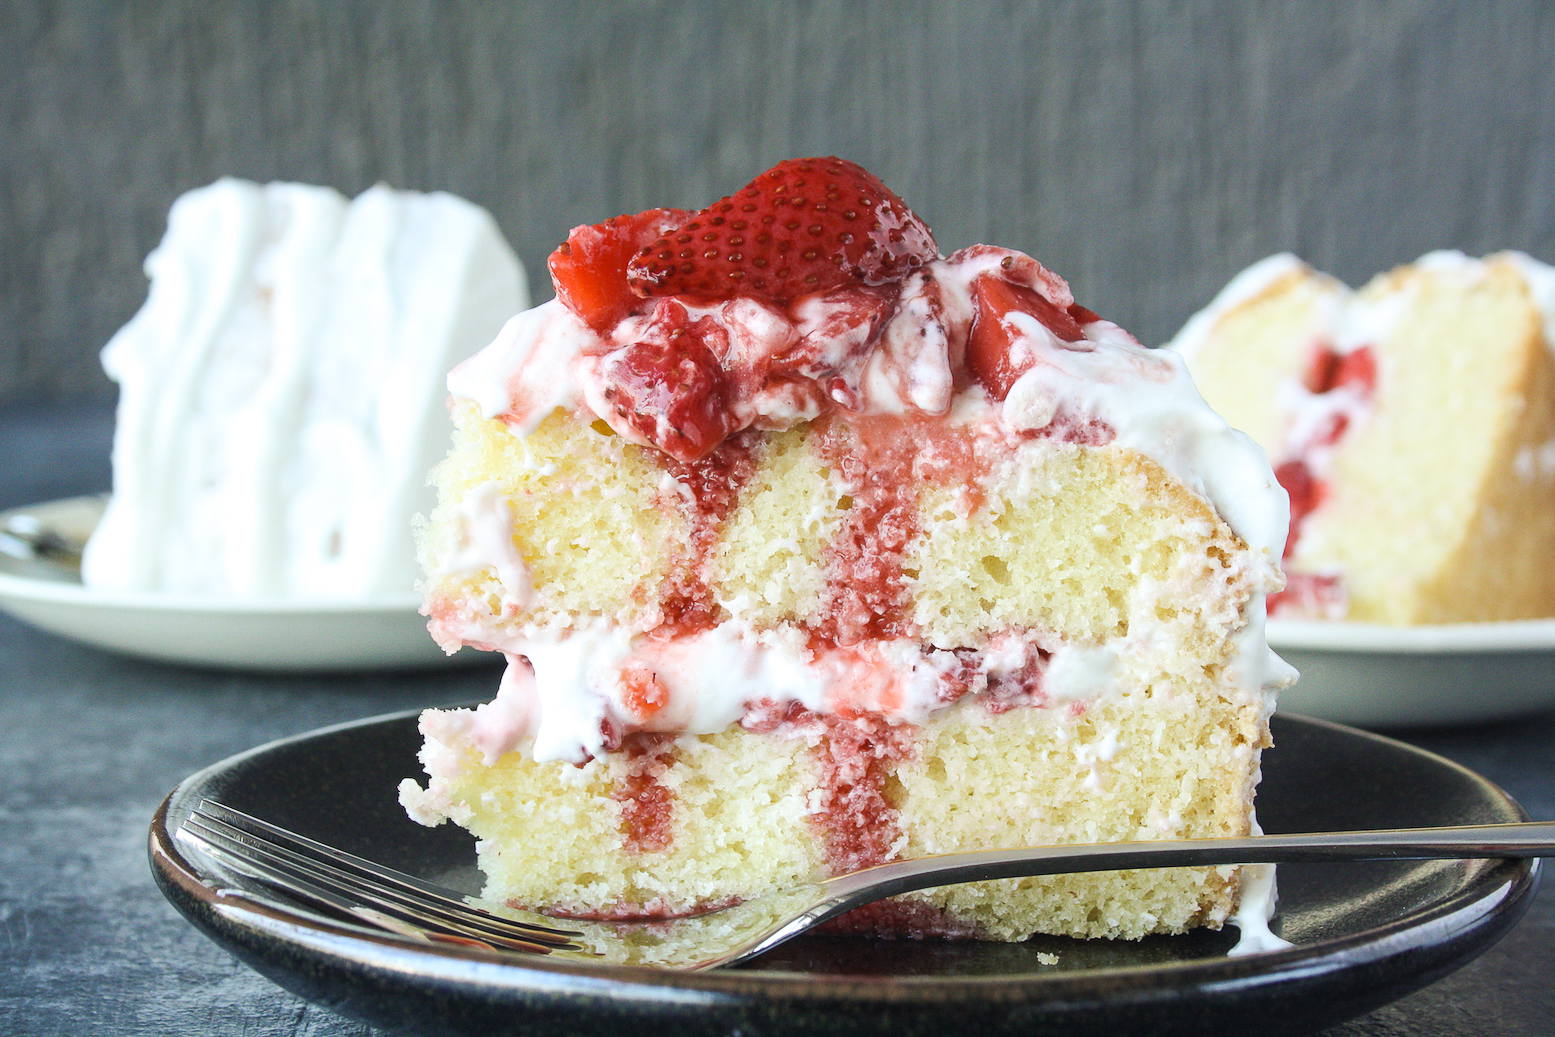 Tender butter cake layered with mascarpone cream frosting and juicy roasted strawberries!